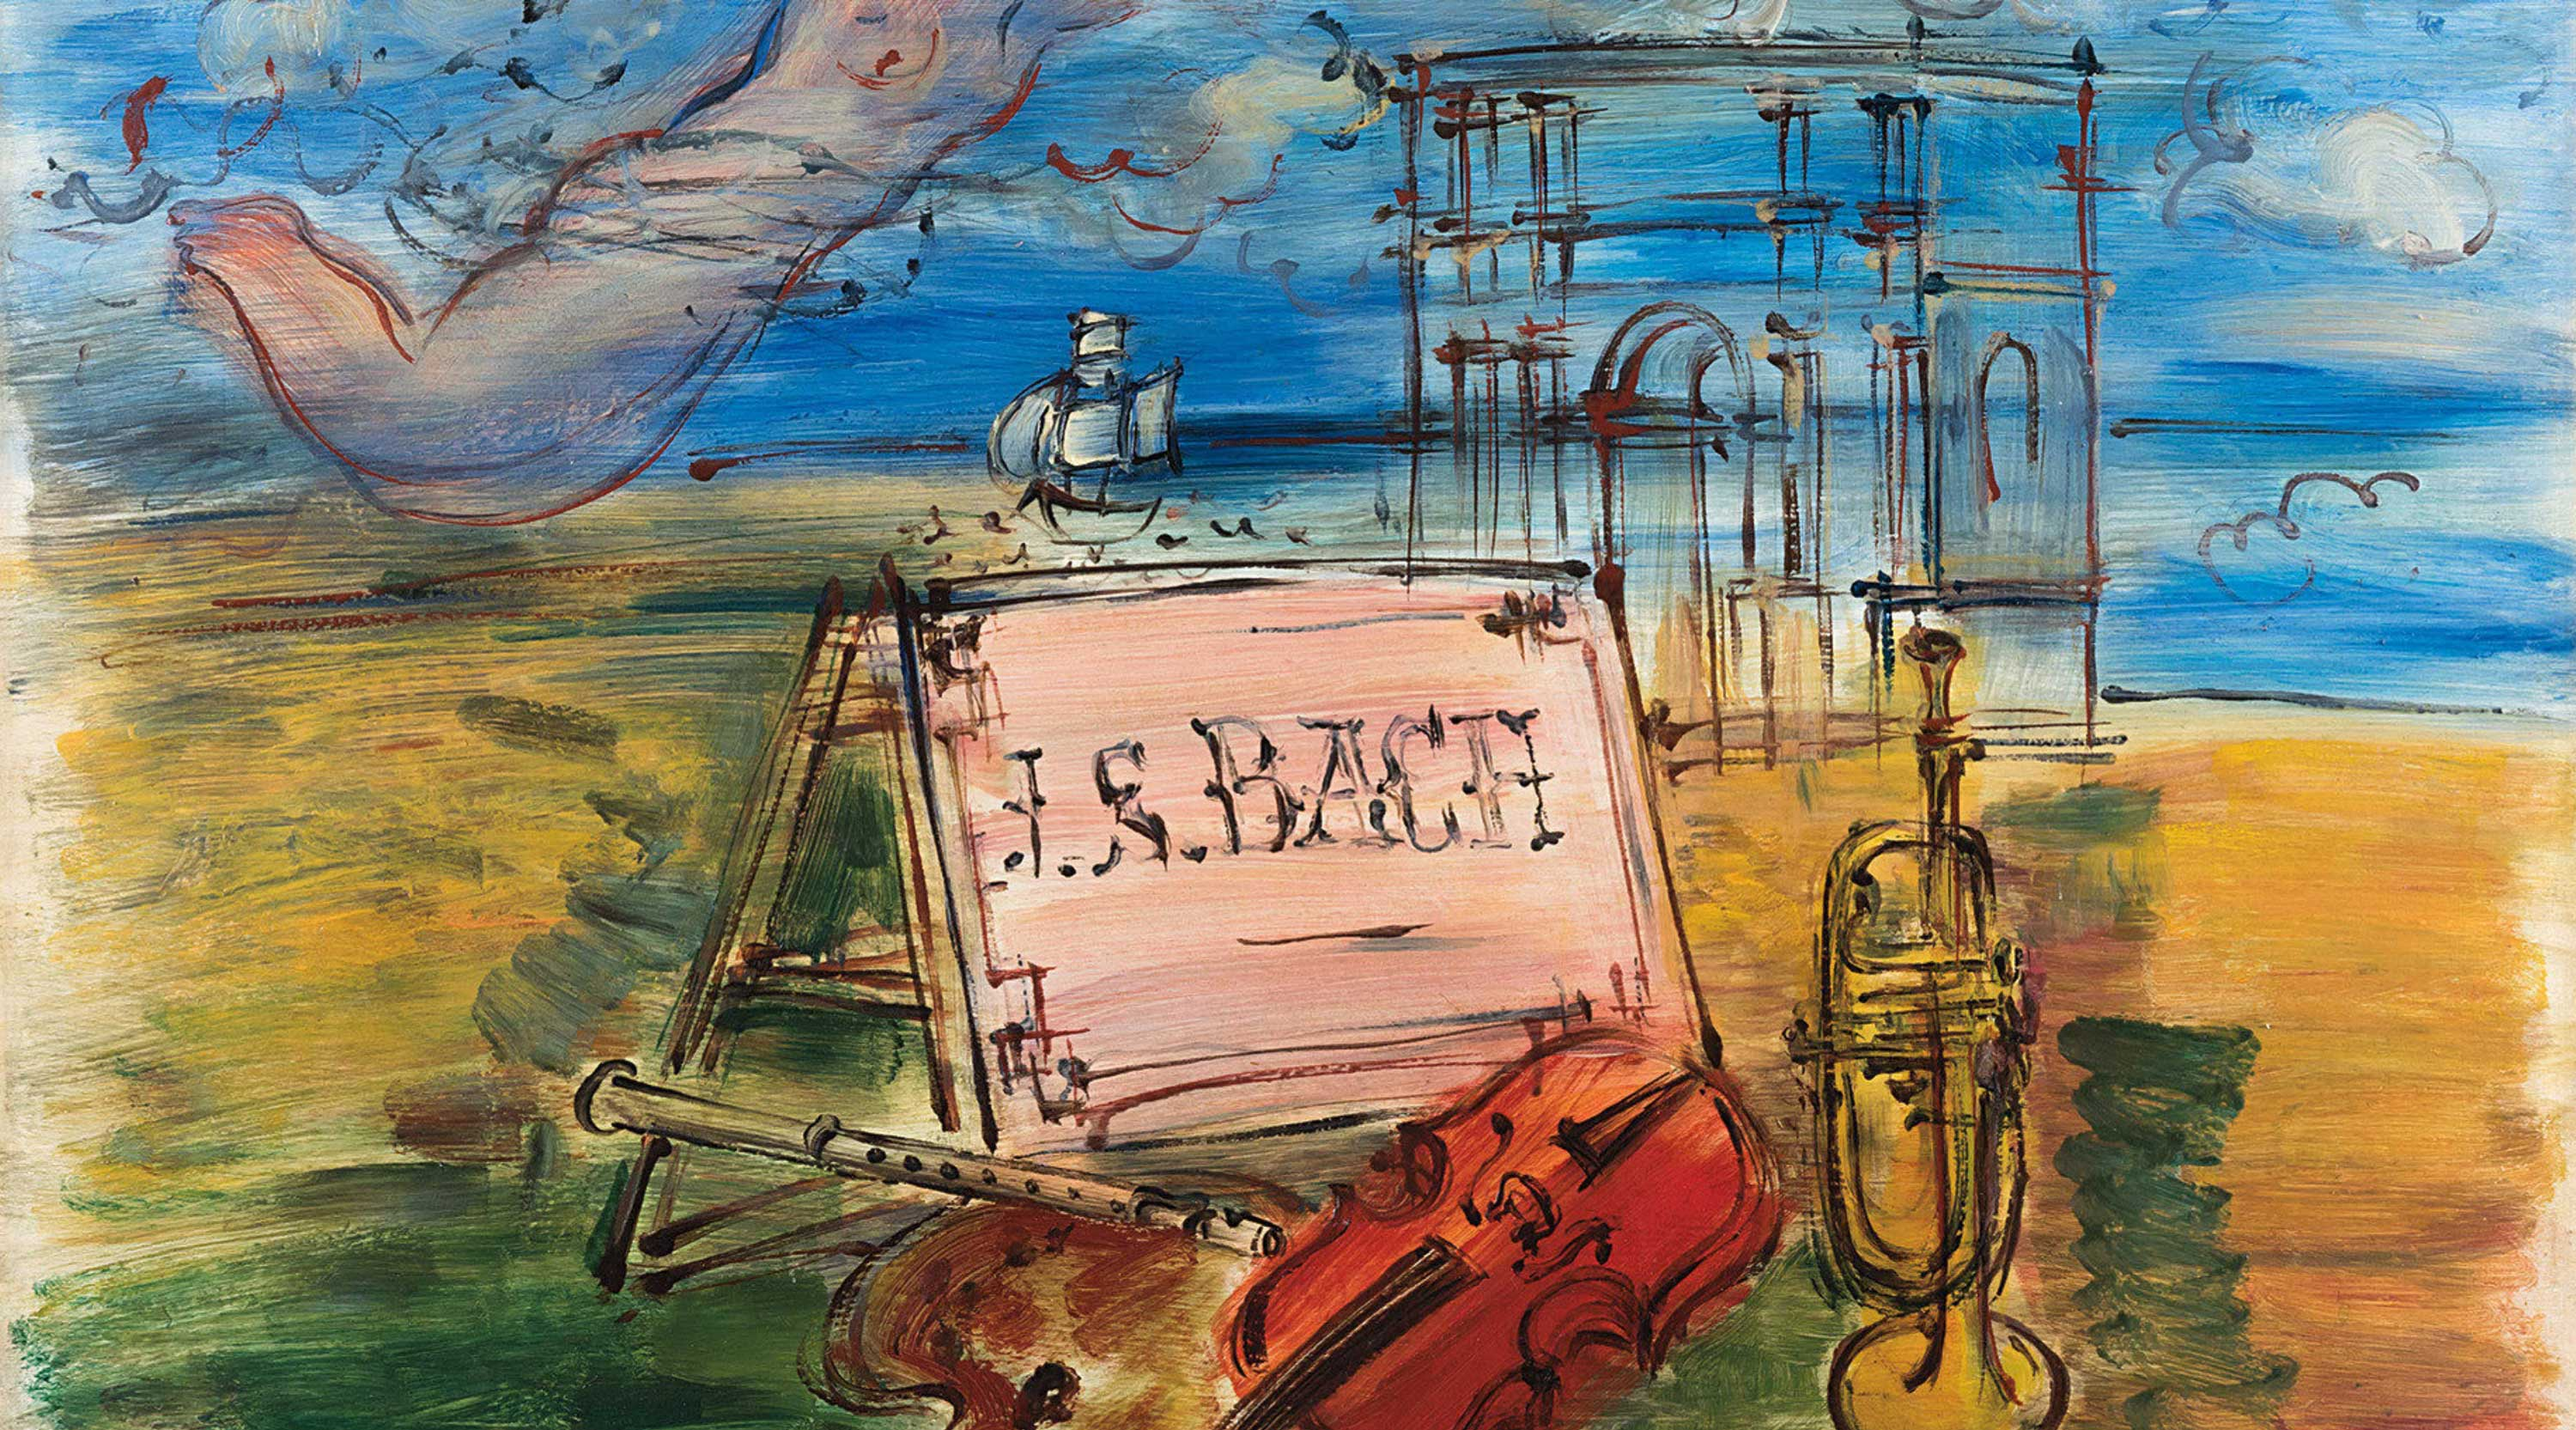 Hommage to Bach, a painting by French Fauvist painter Raoul Dufy (1877-1953). Dufy has made several paintings honouring classical composers.